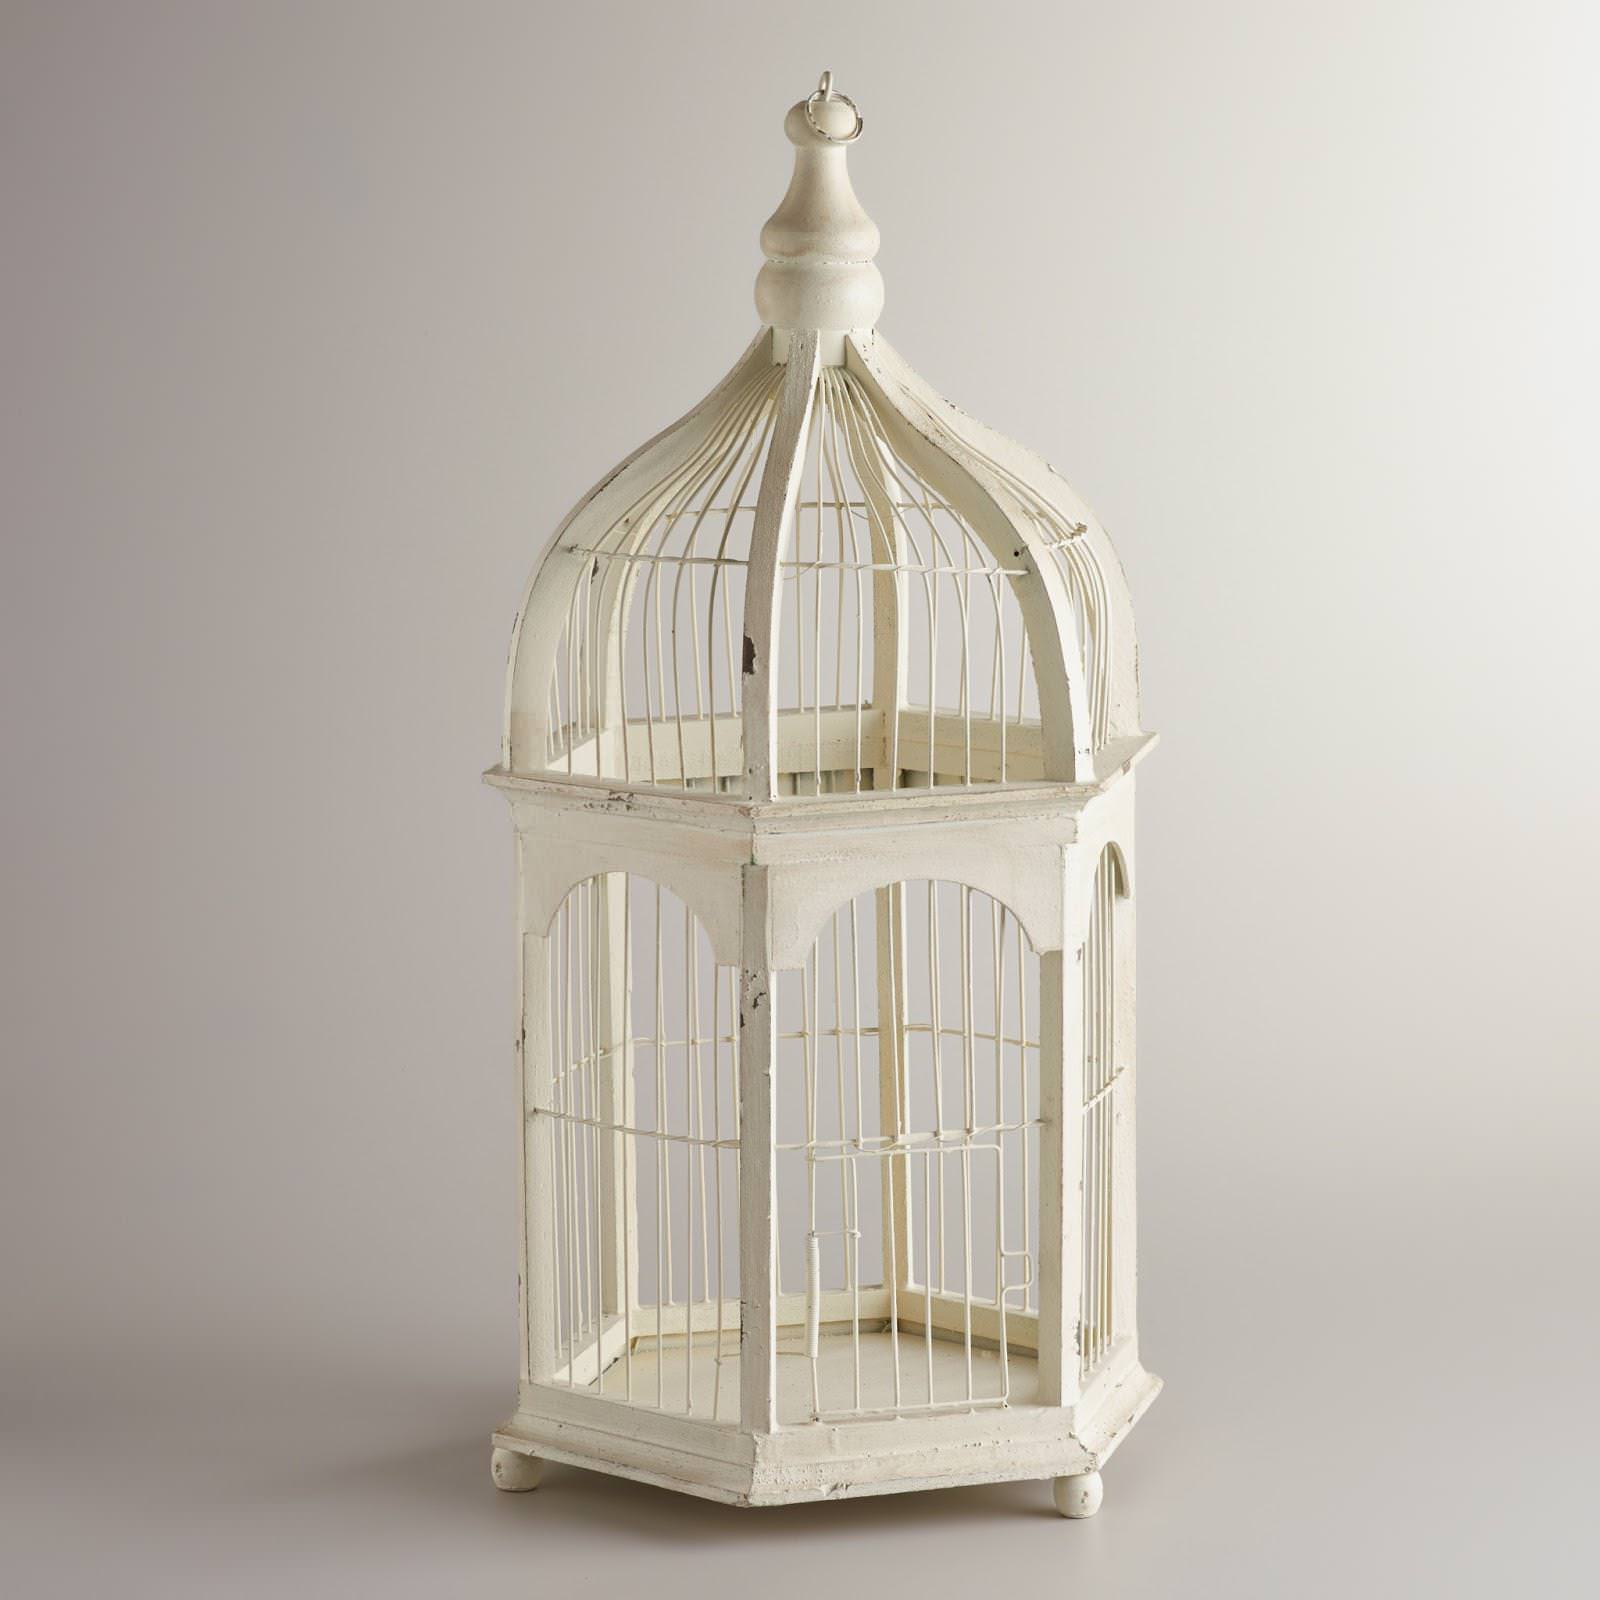 Image of: Decorative Bird Cages Wholesale